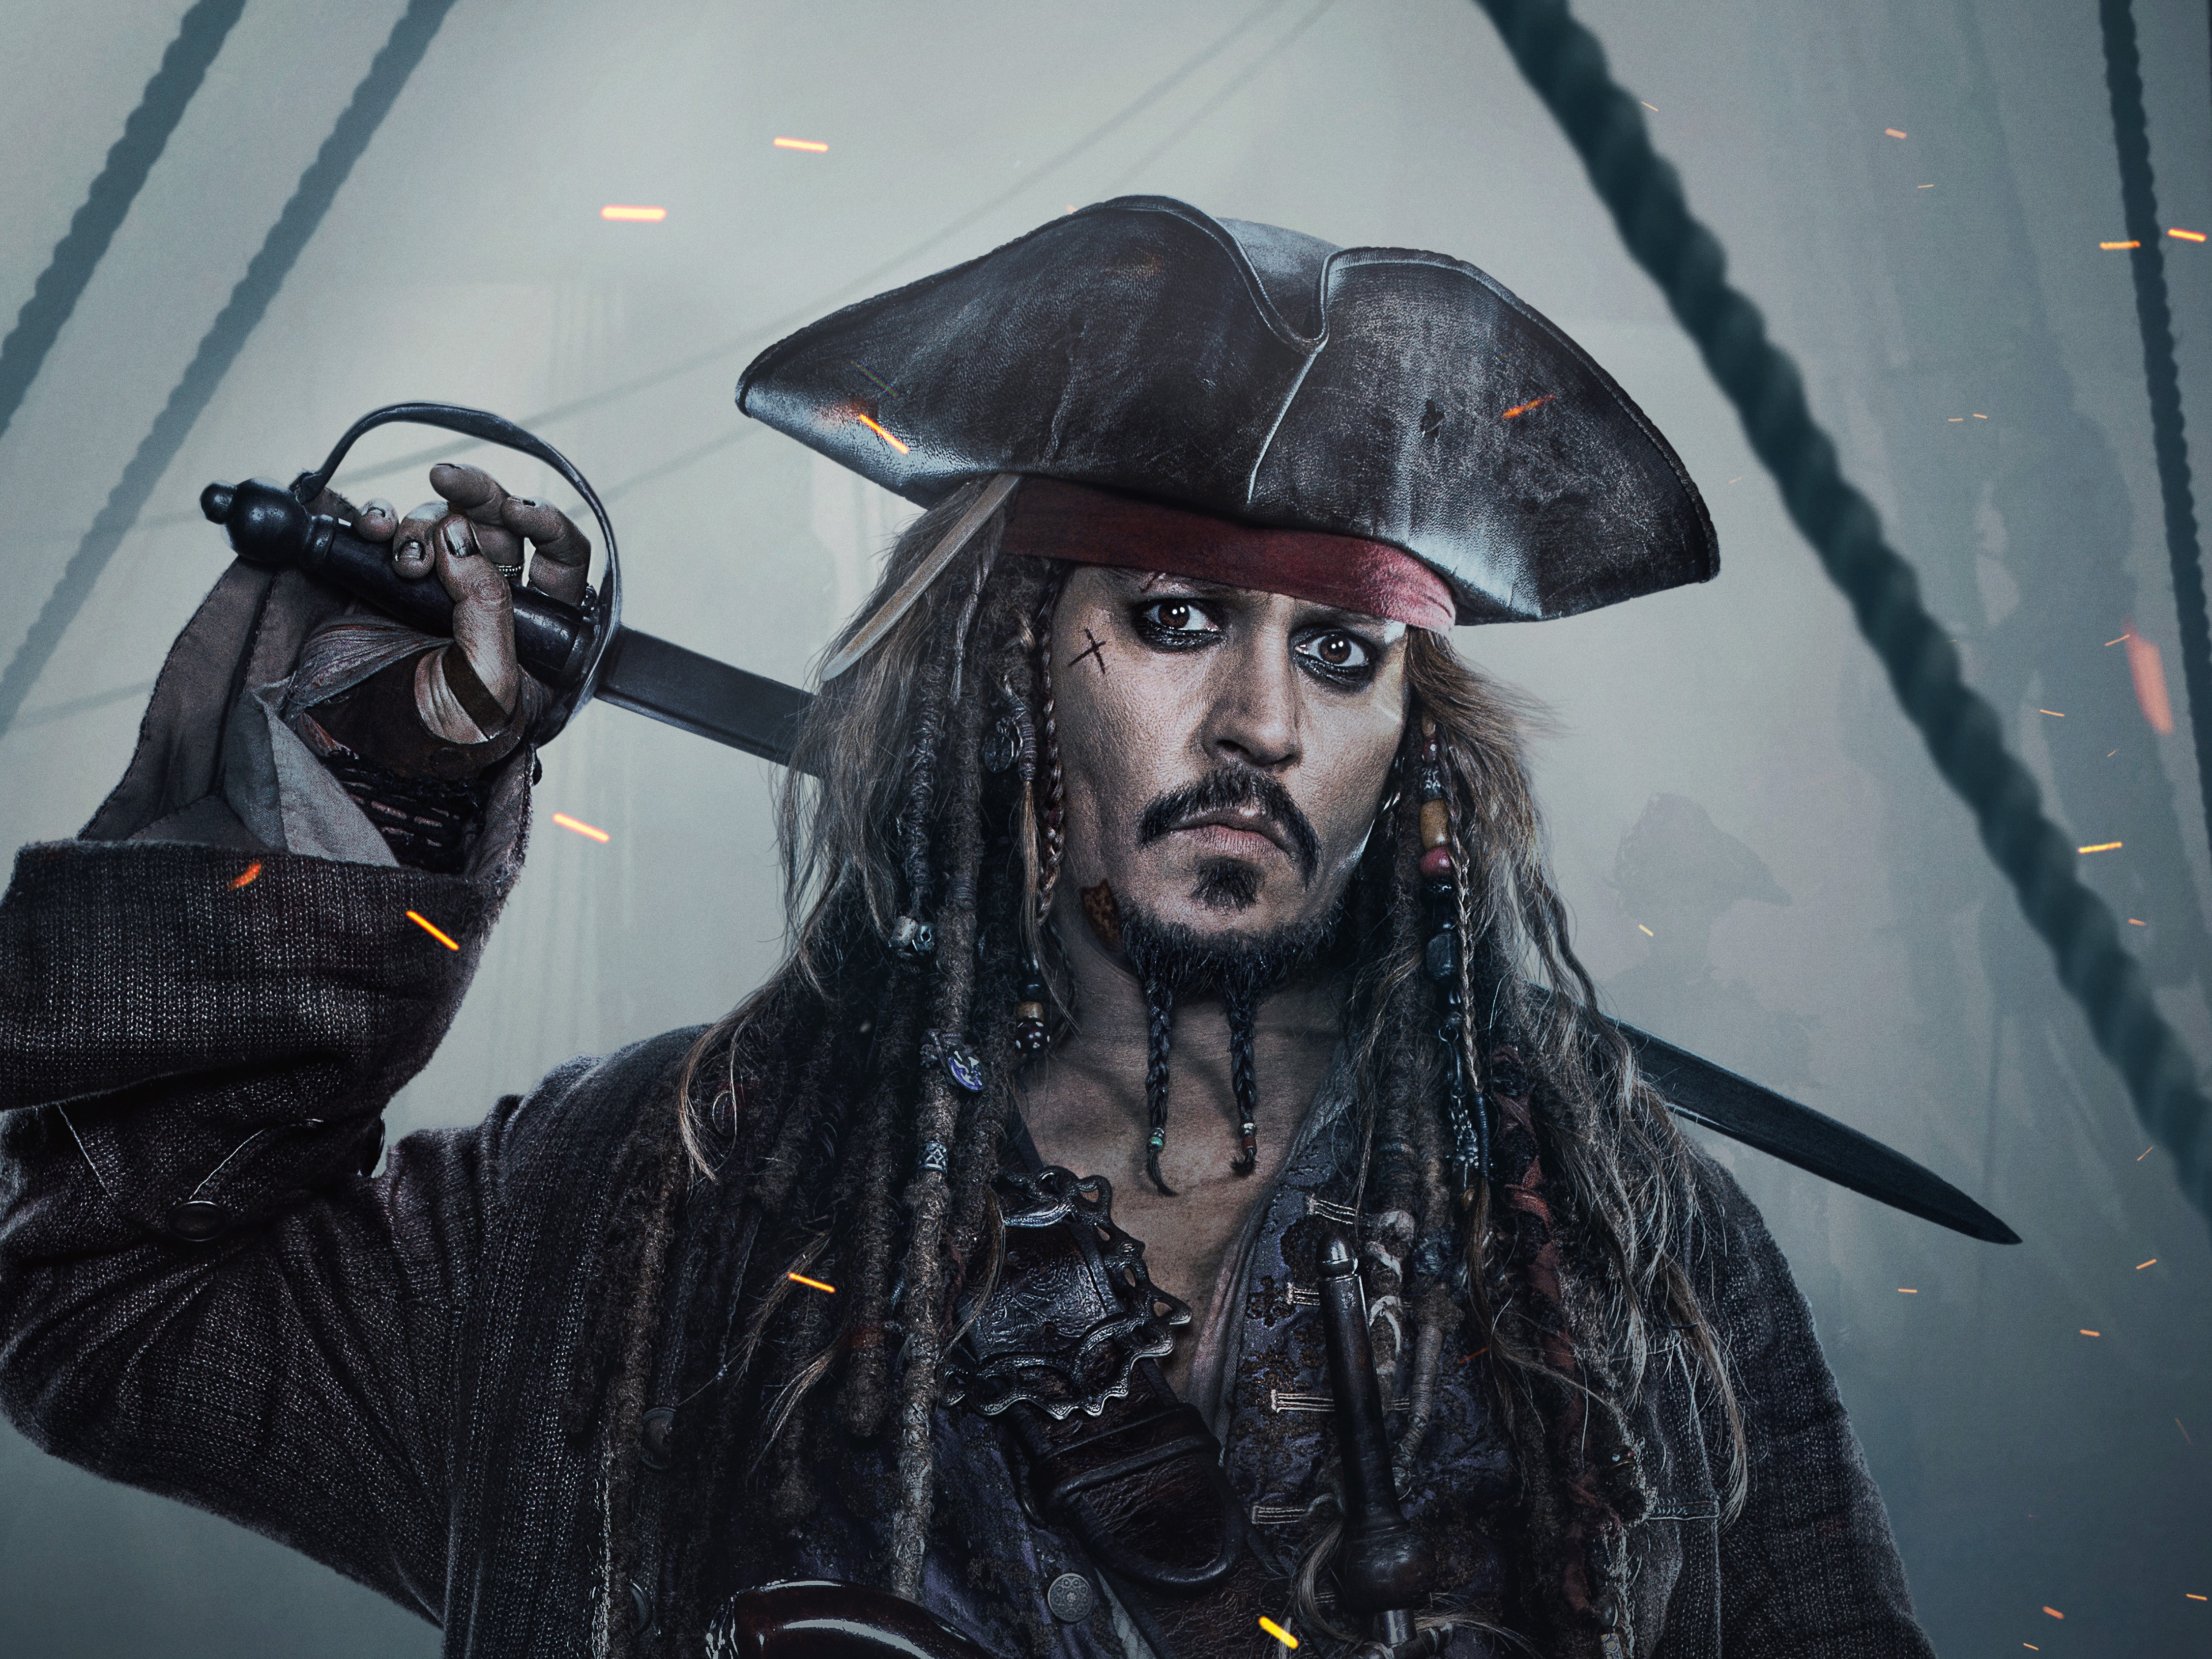 Jack sparrow 4k Ultra HD Wallpaper